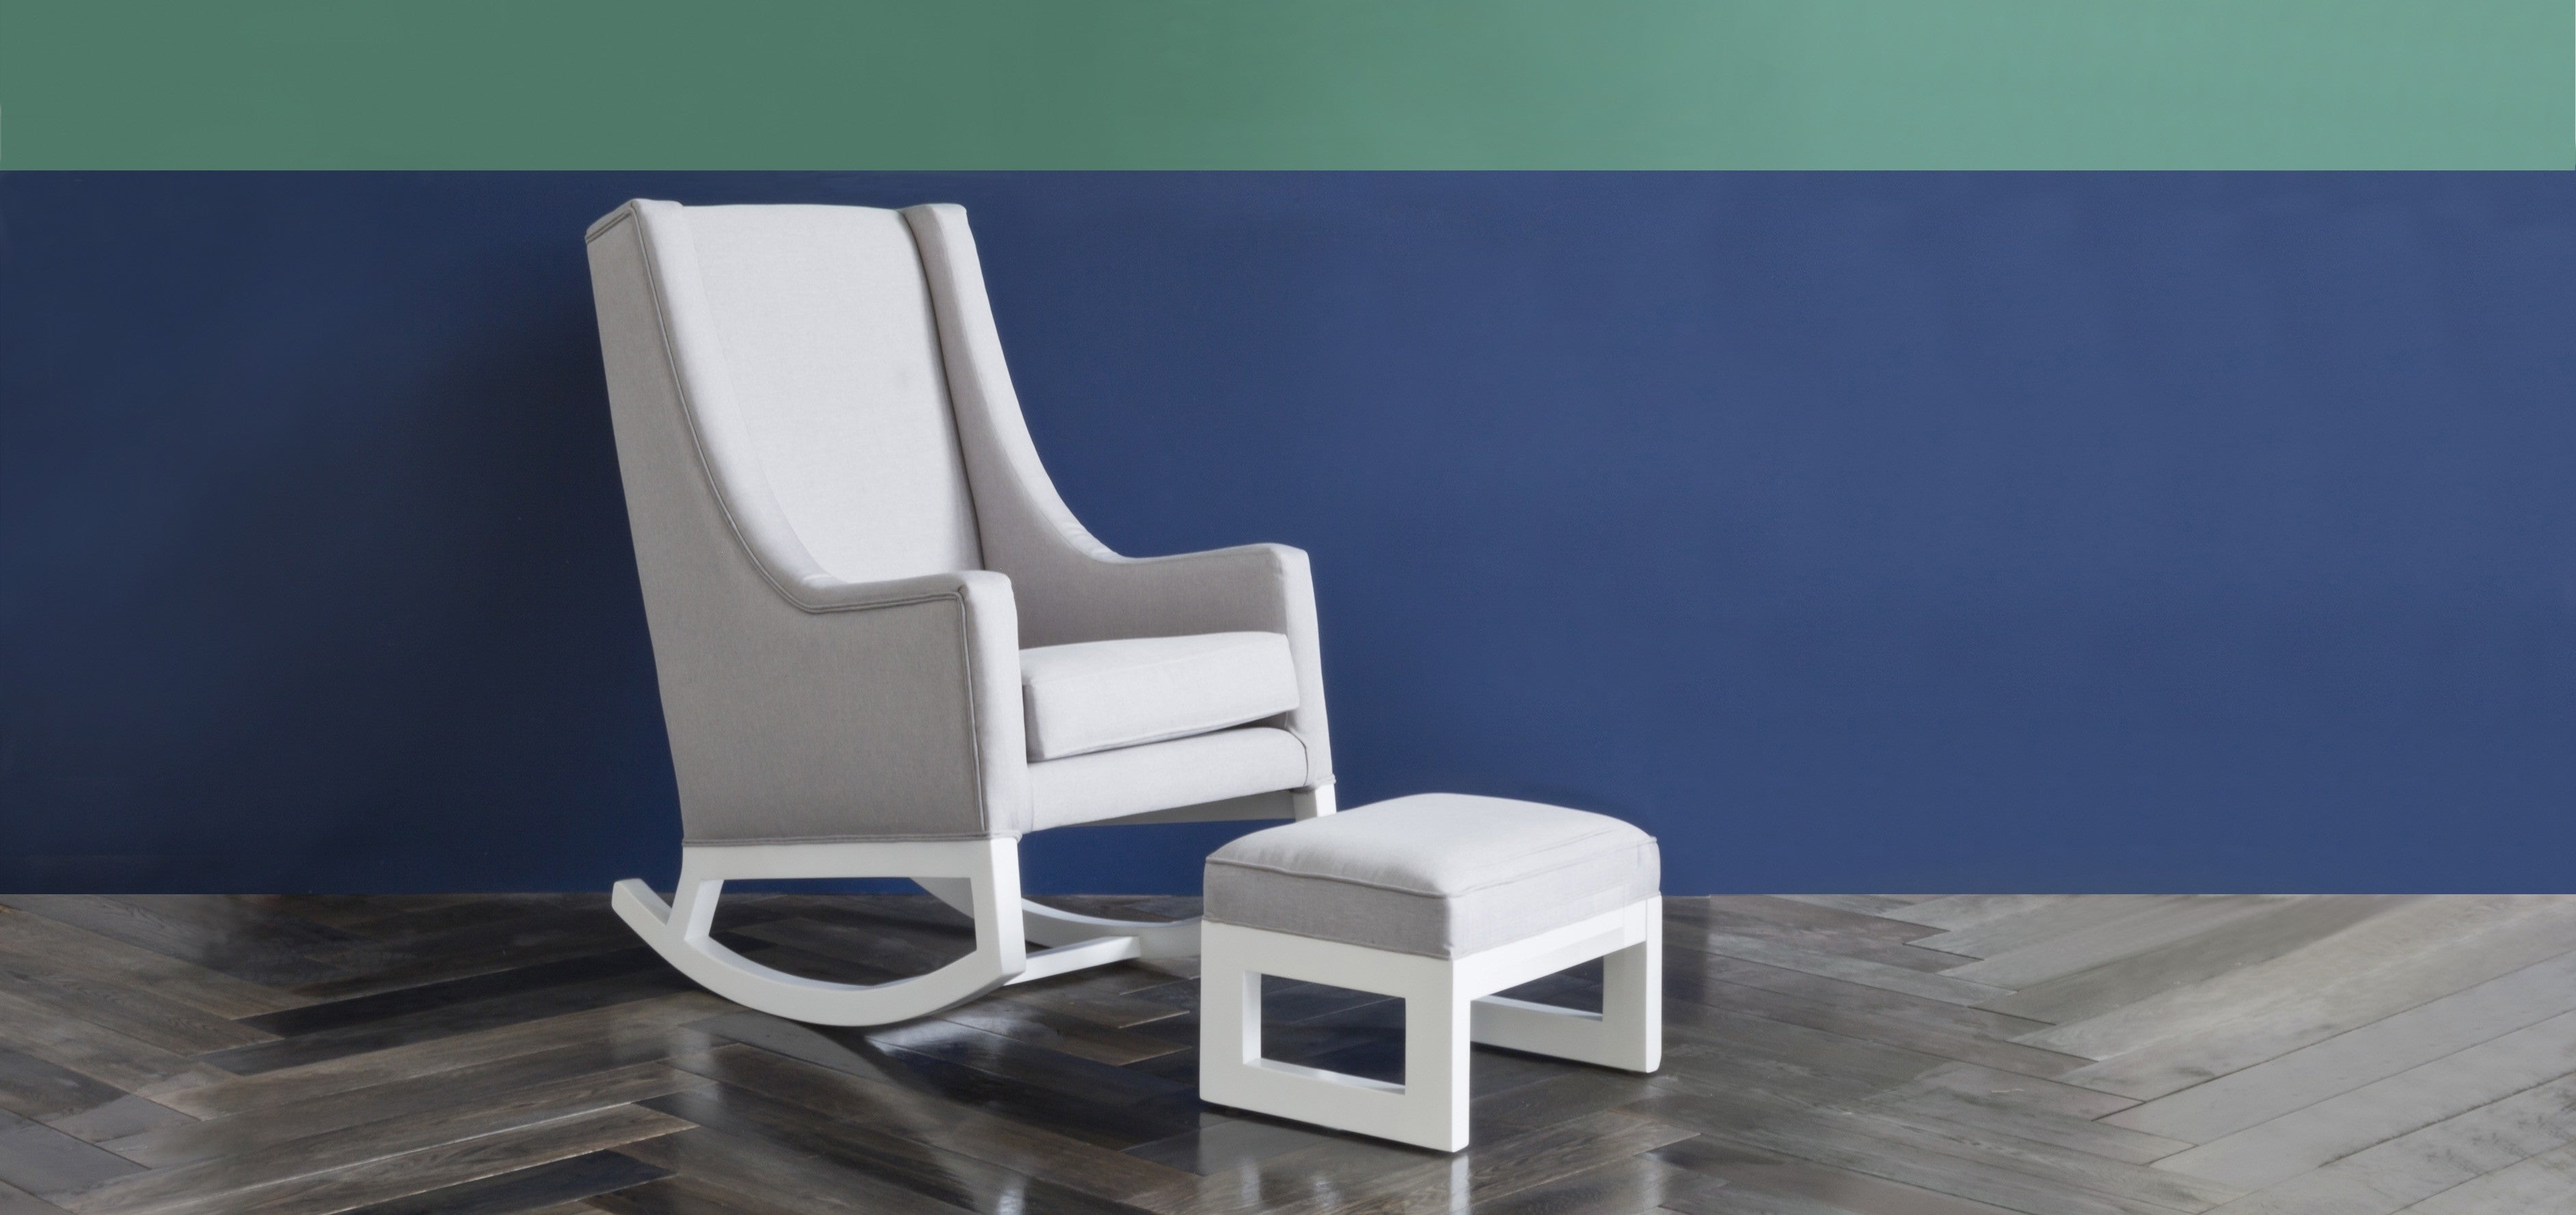 http://hobbe.com.au/products/london-rocking-chair